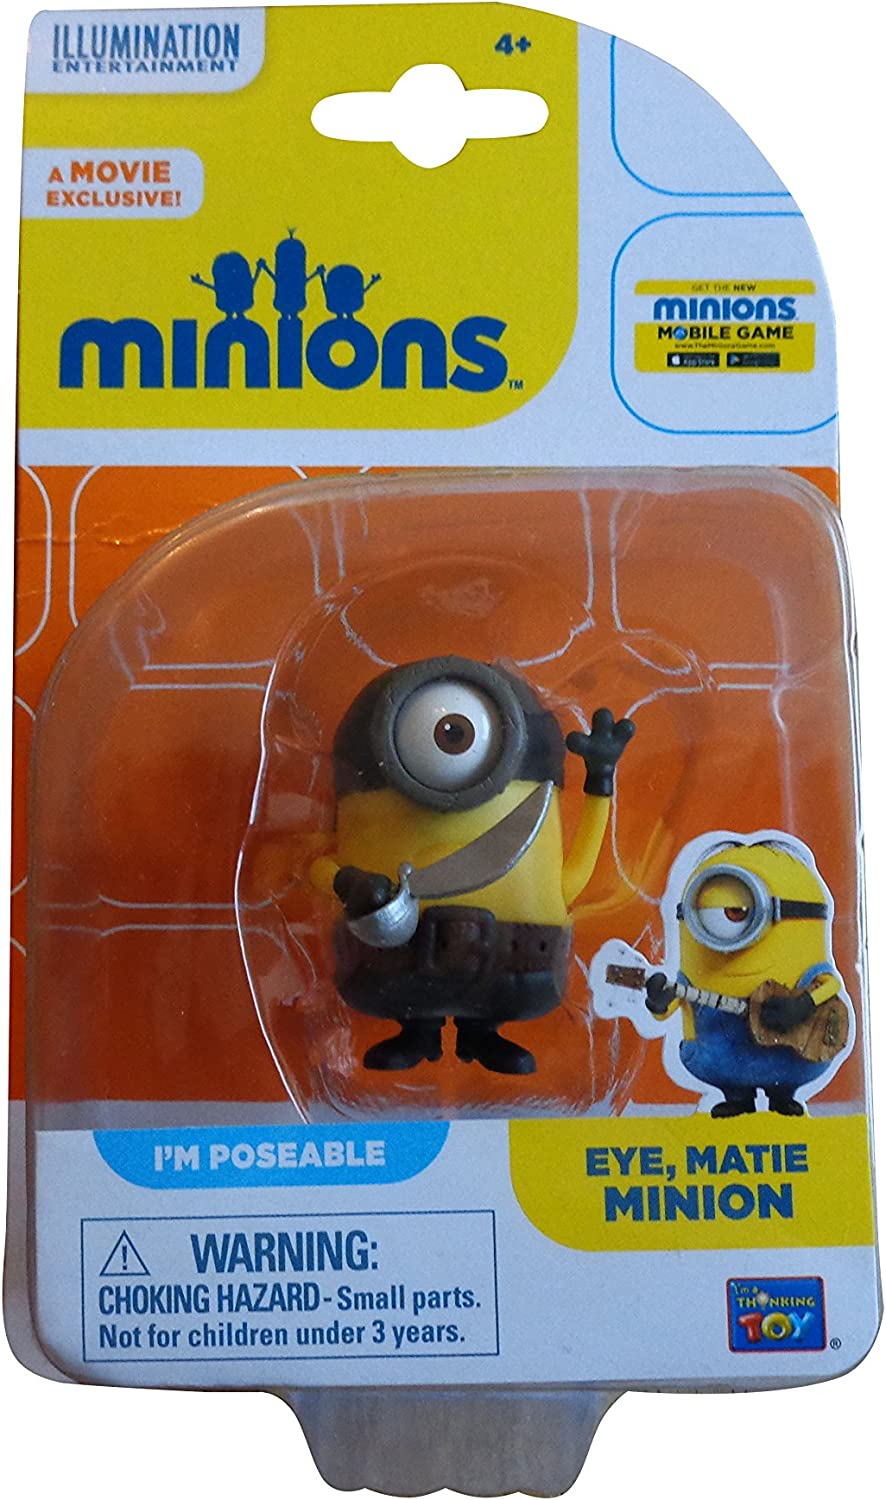 NEW Matie Minion Poseable Action Figure 2 Inches Tall Minions Eye